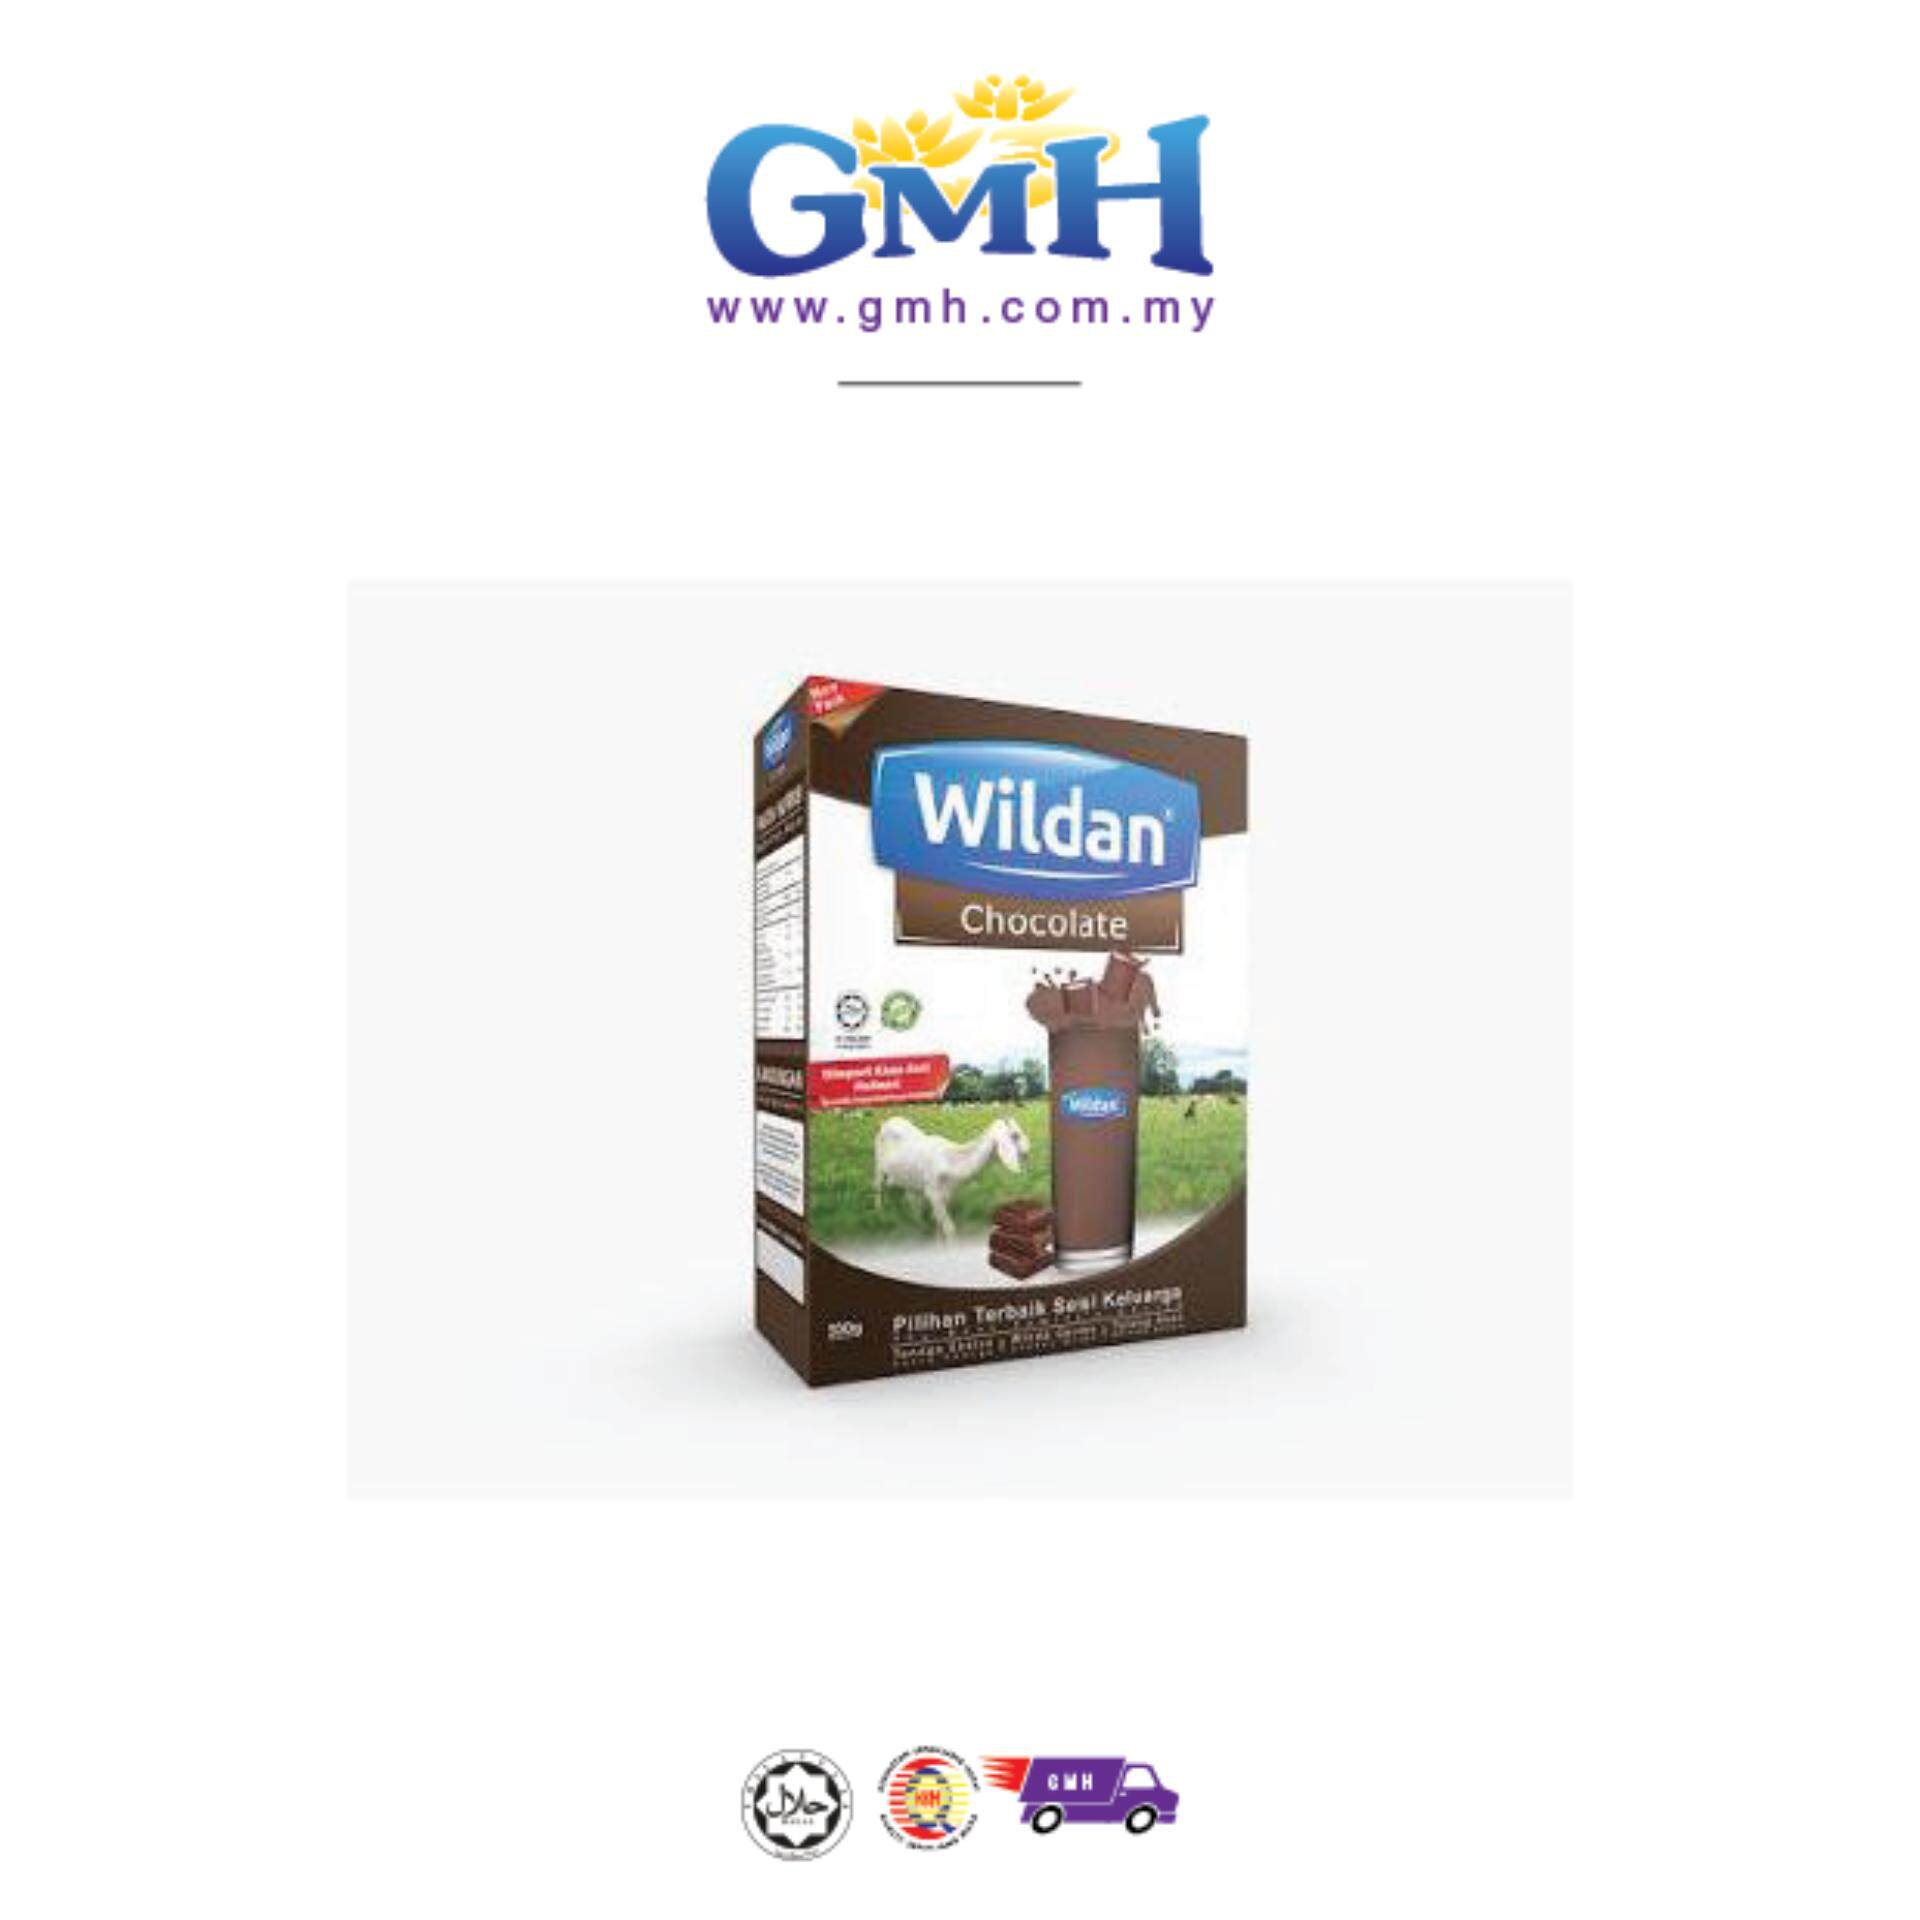 Gmh Health Beauty New Arrival Susu Bear Breand Plus Kurma Wildan Kambing Coklat 500gm